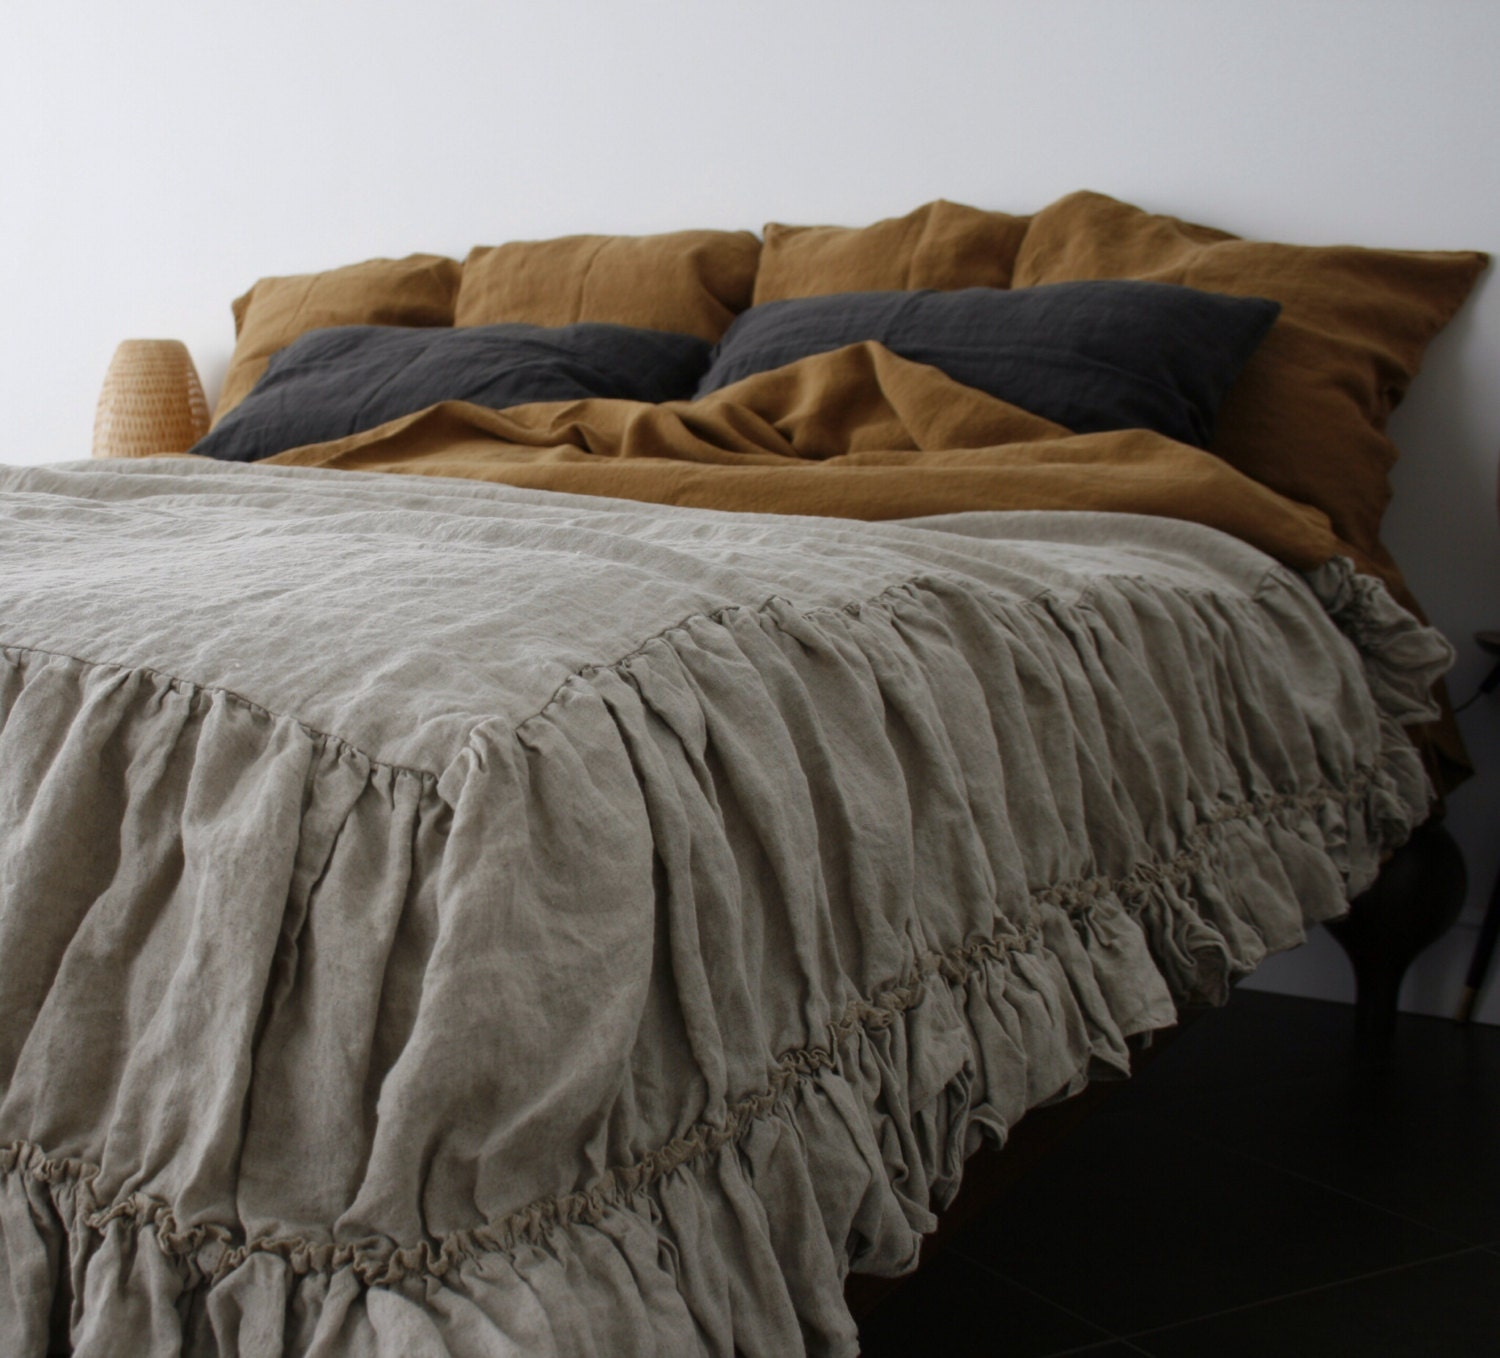 LINEN BEDSPREAD. Rustic style linen queen size bedspread/coverlet. New (Other) $ Time left 14h 34m left. 0 bids +$ shipping. SPONSORED. Fancy Linen Oversize Luxury Embossed Bedspread Assorted Colors, Sizes New. Brand New. $ Buy It Now. Free Shipping. SPONSORED.